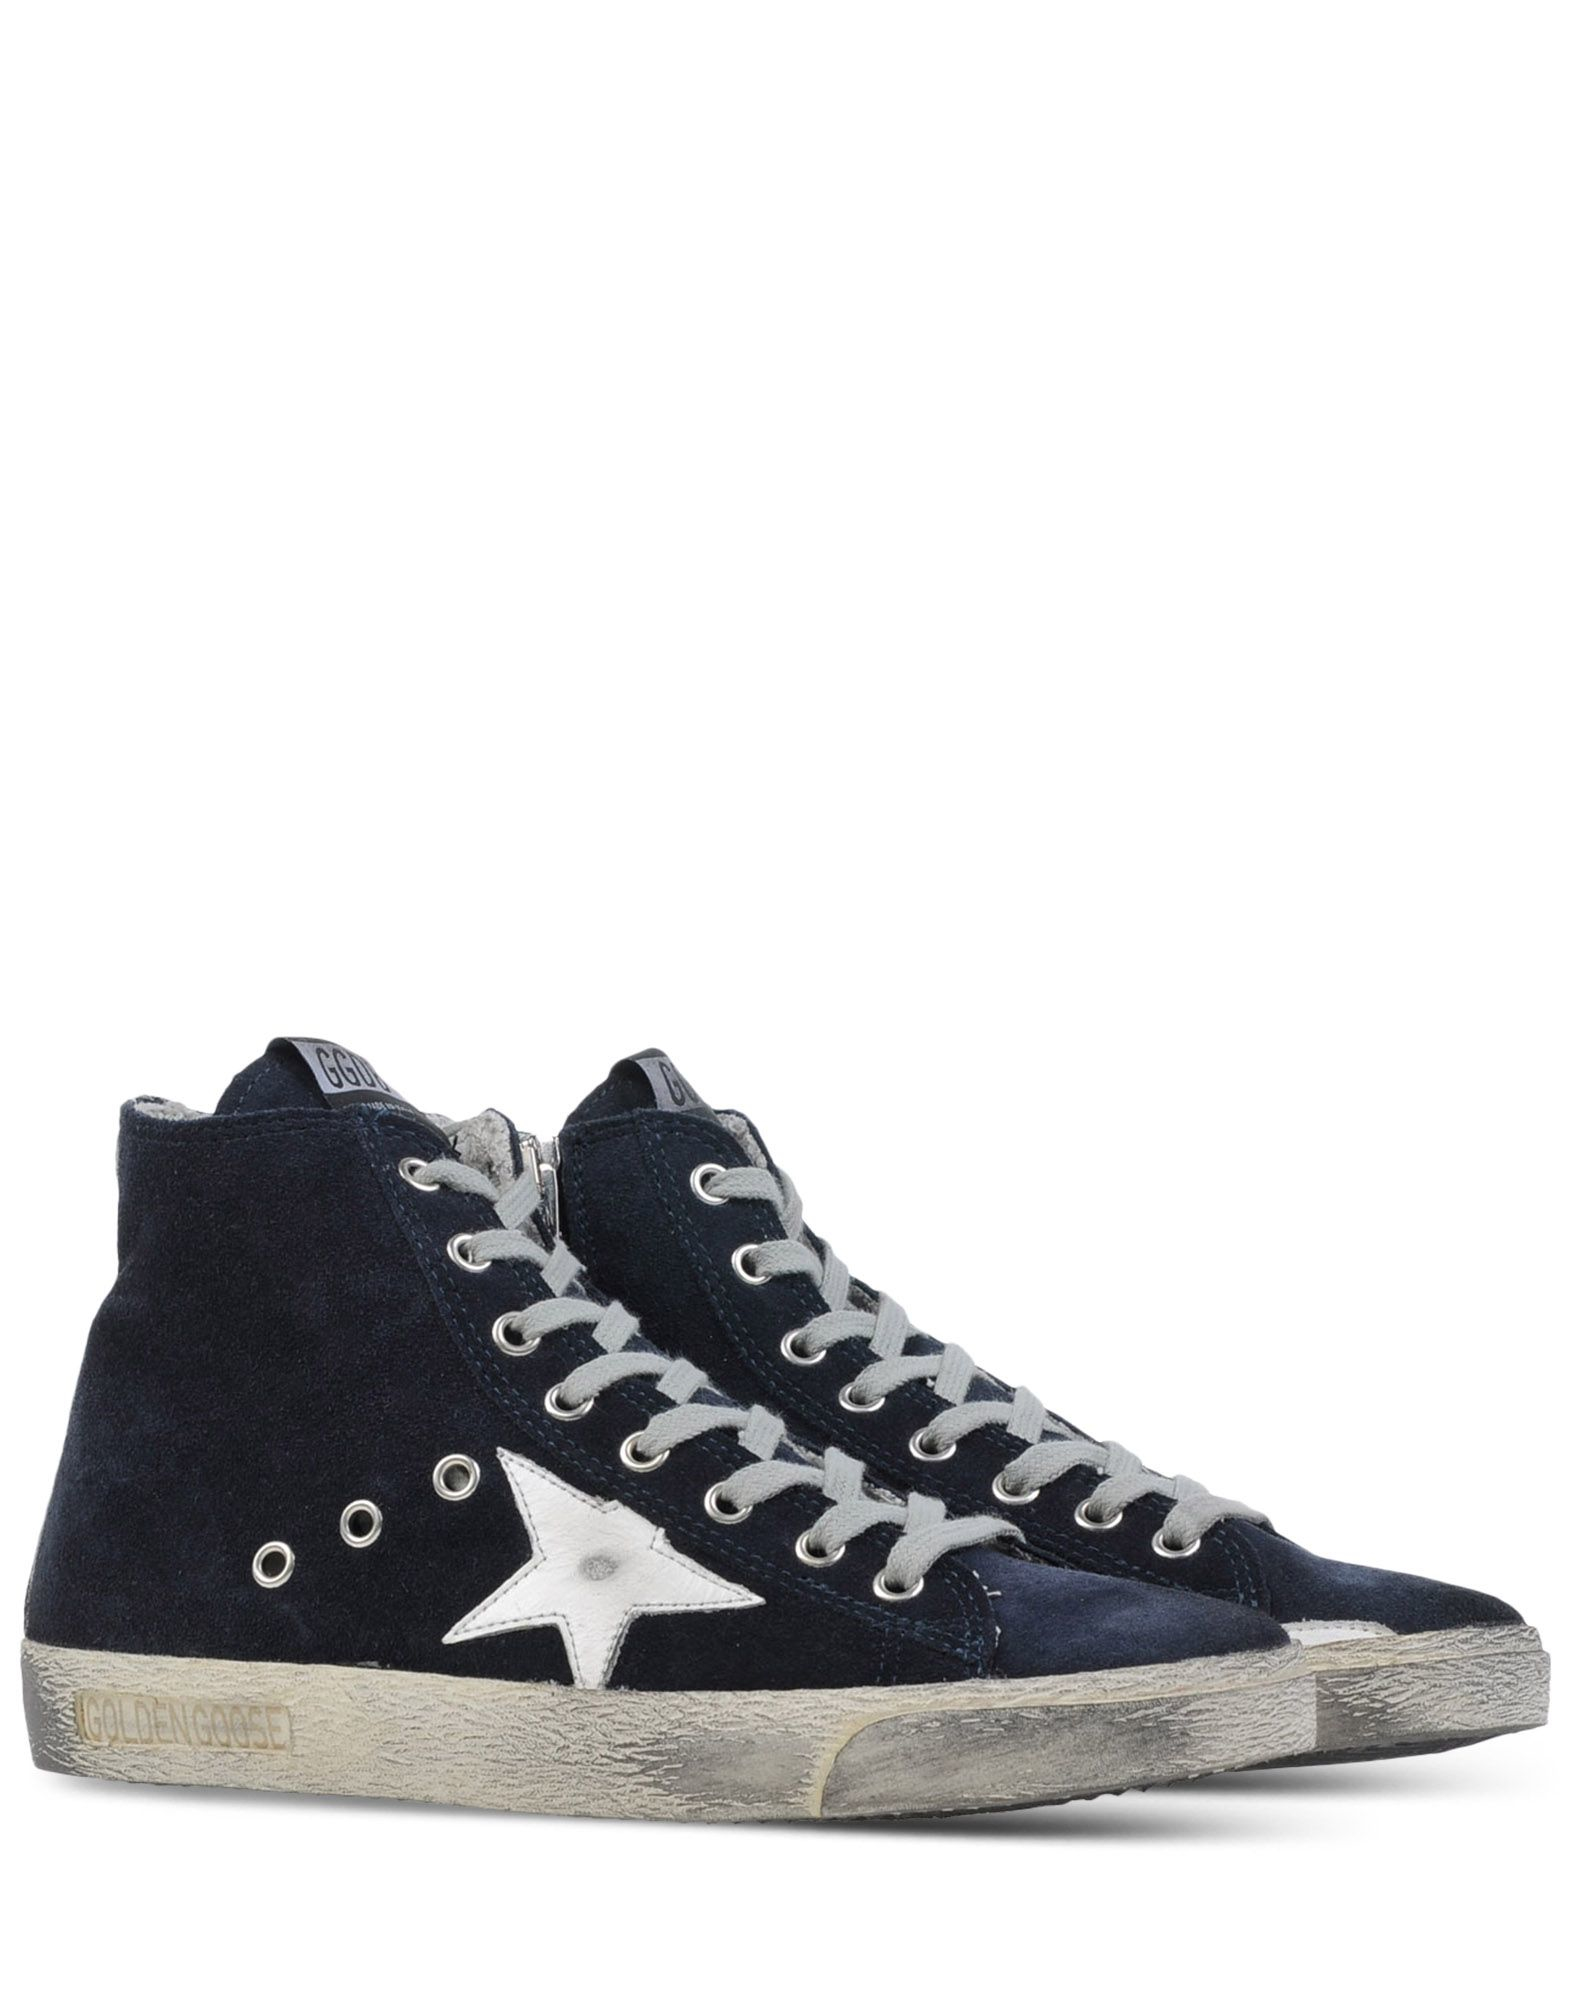 golden goose deluxe brand high top sneakers in blue dark blue lyst. Black Bedroom Furniture Sets. Home Design Ideas